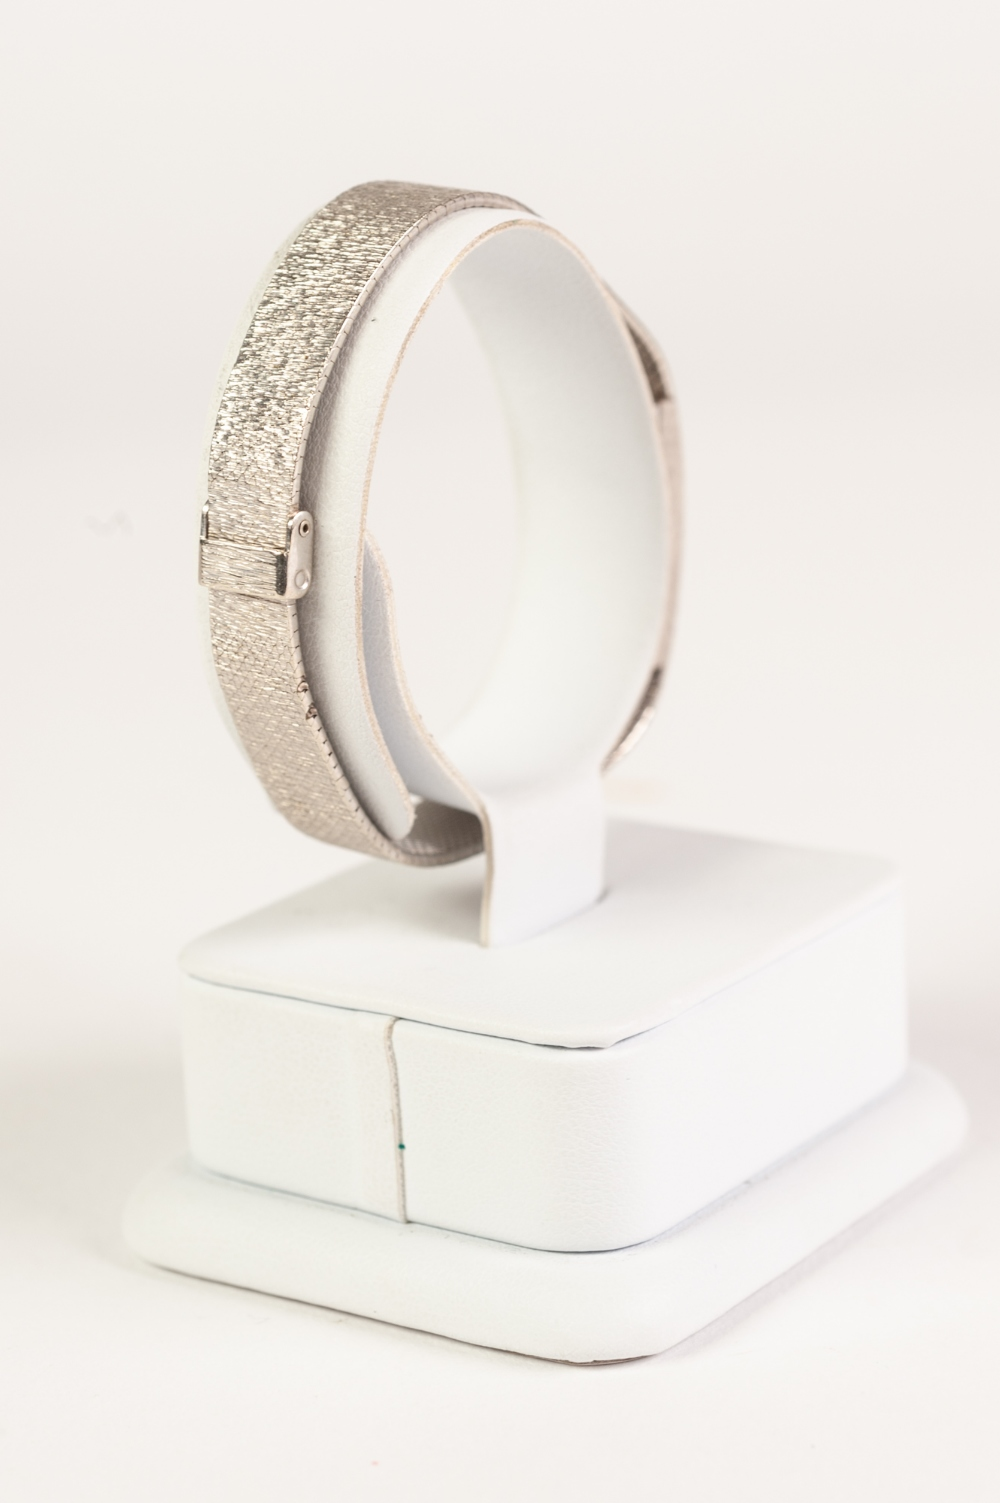 Lot 16 - 9ct WHITE GOLD LADY'S BUECHE-GIROD WRIST WATCH, the tiny square dial within uniformly textured